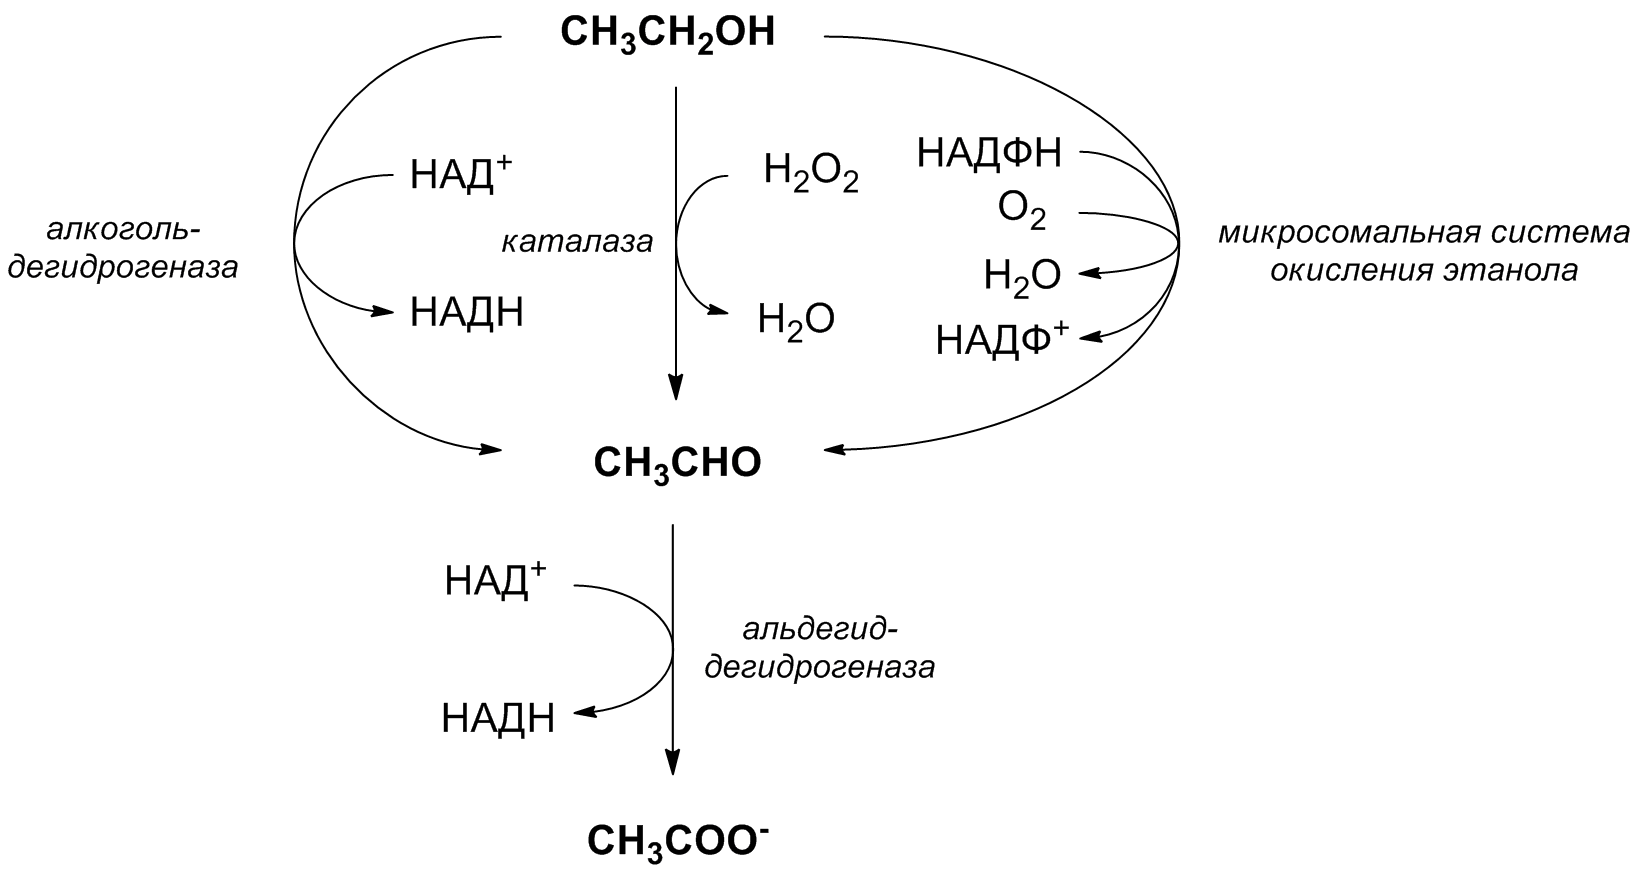 File:Ethanol metabolism.png - Wikimedia Commons